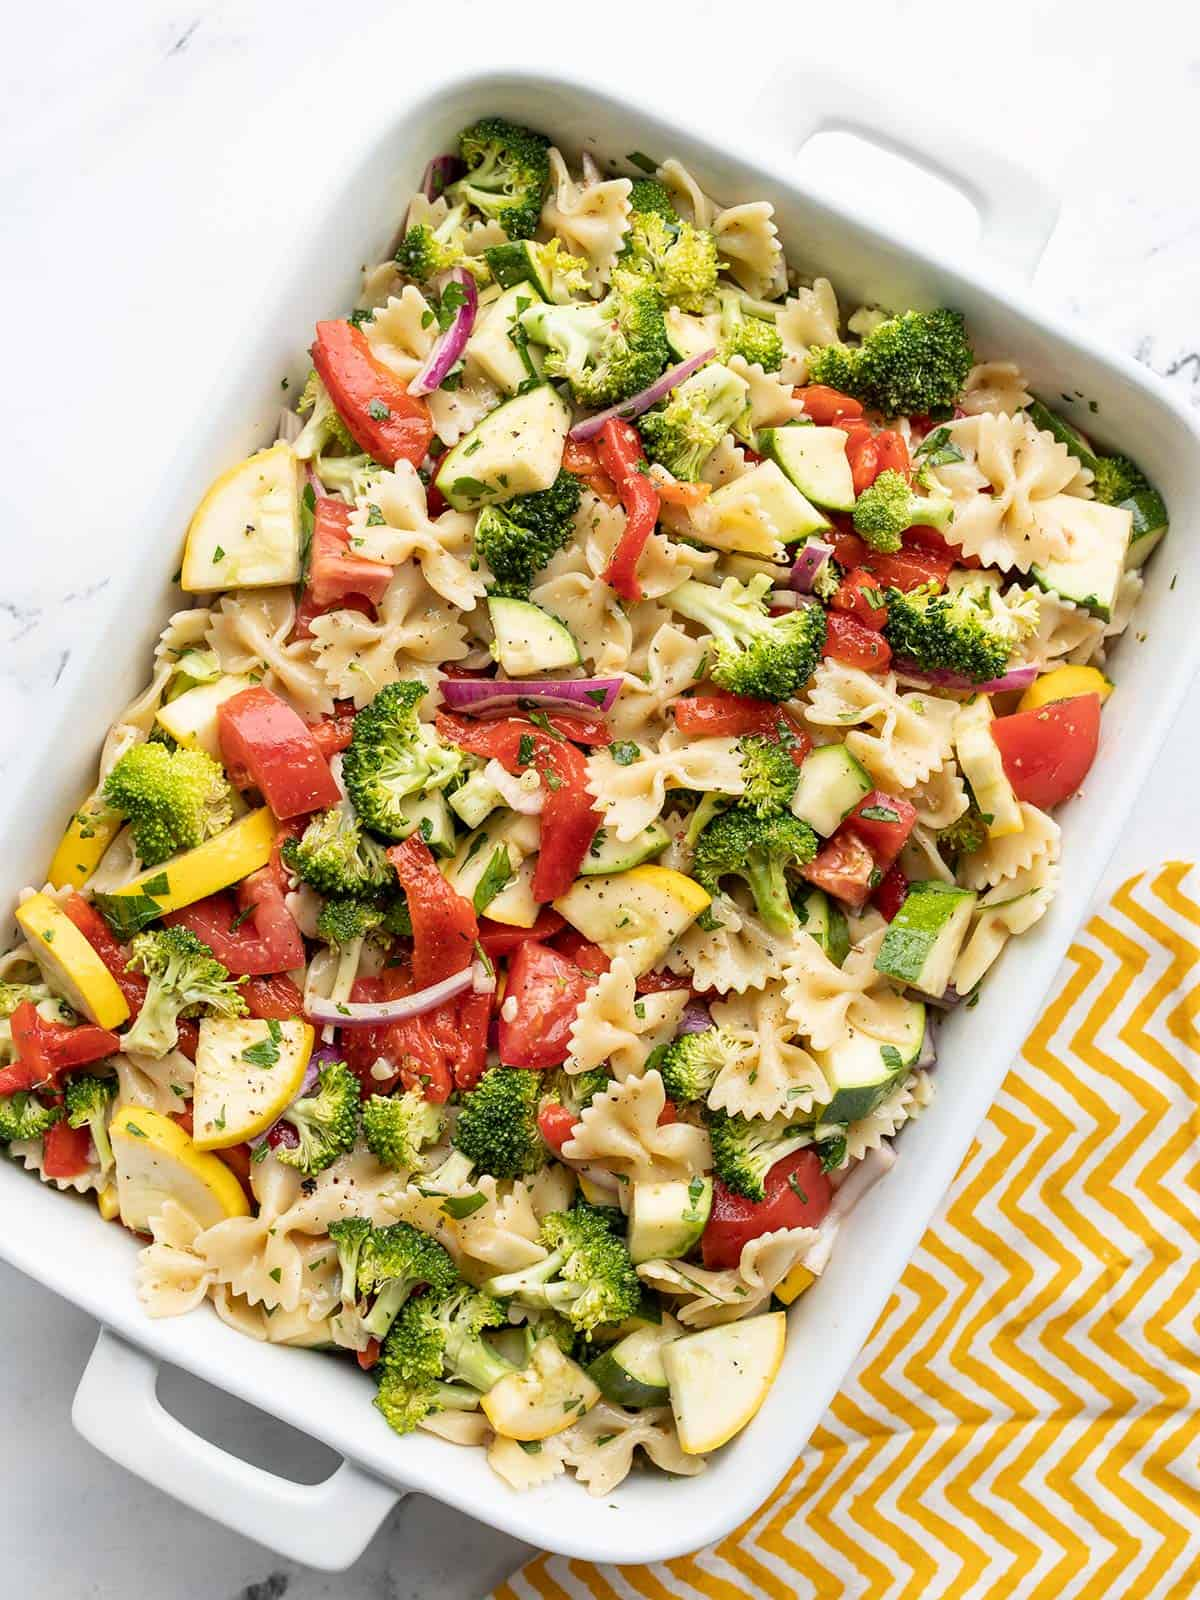 Overhead view of summer vegetable pasta salad in a rectangular casserole dish